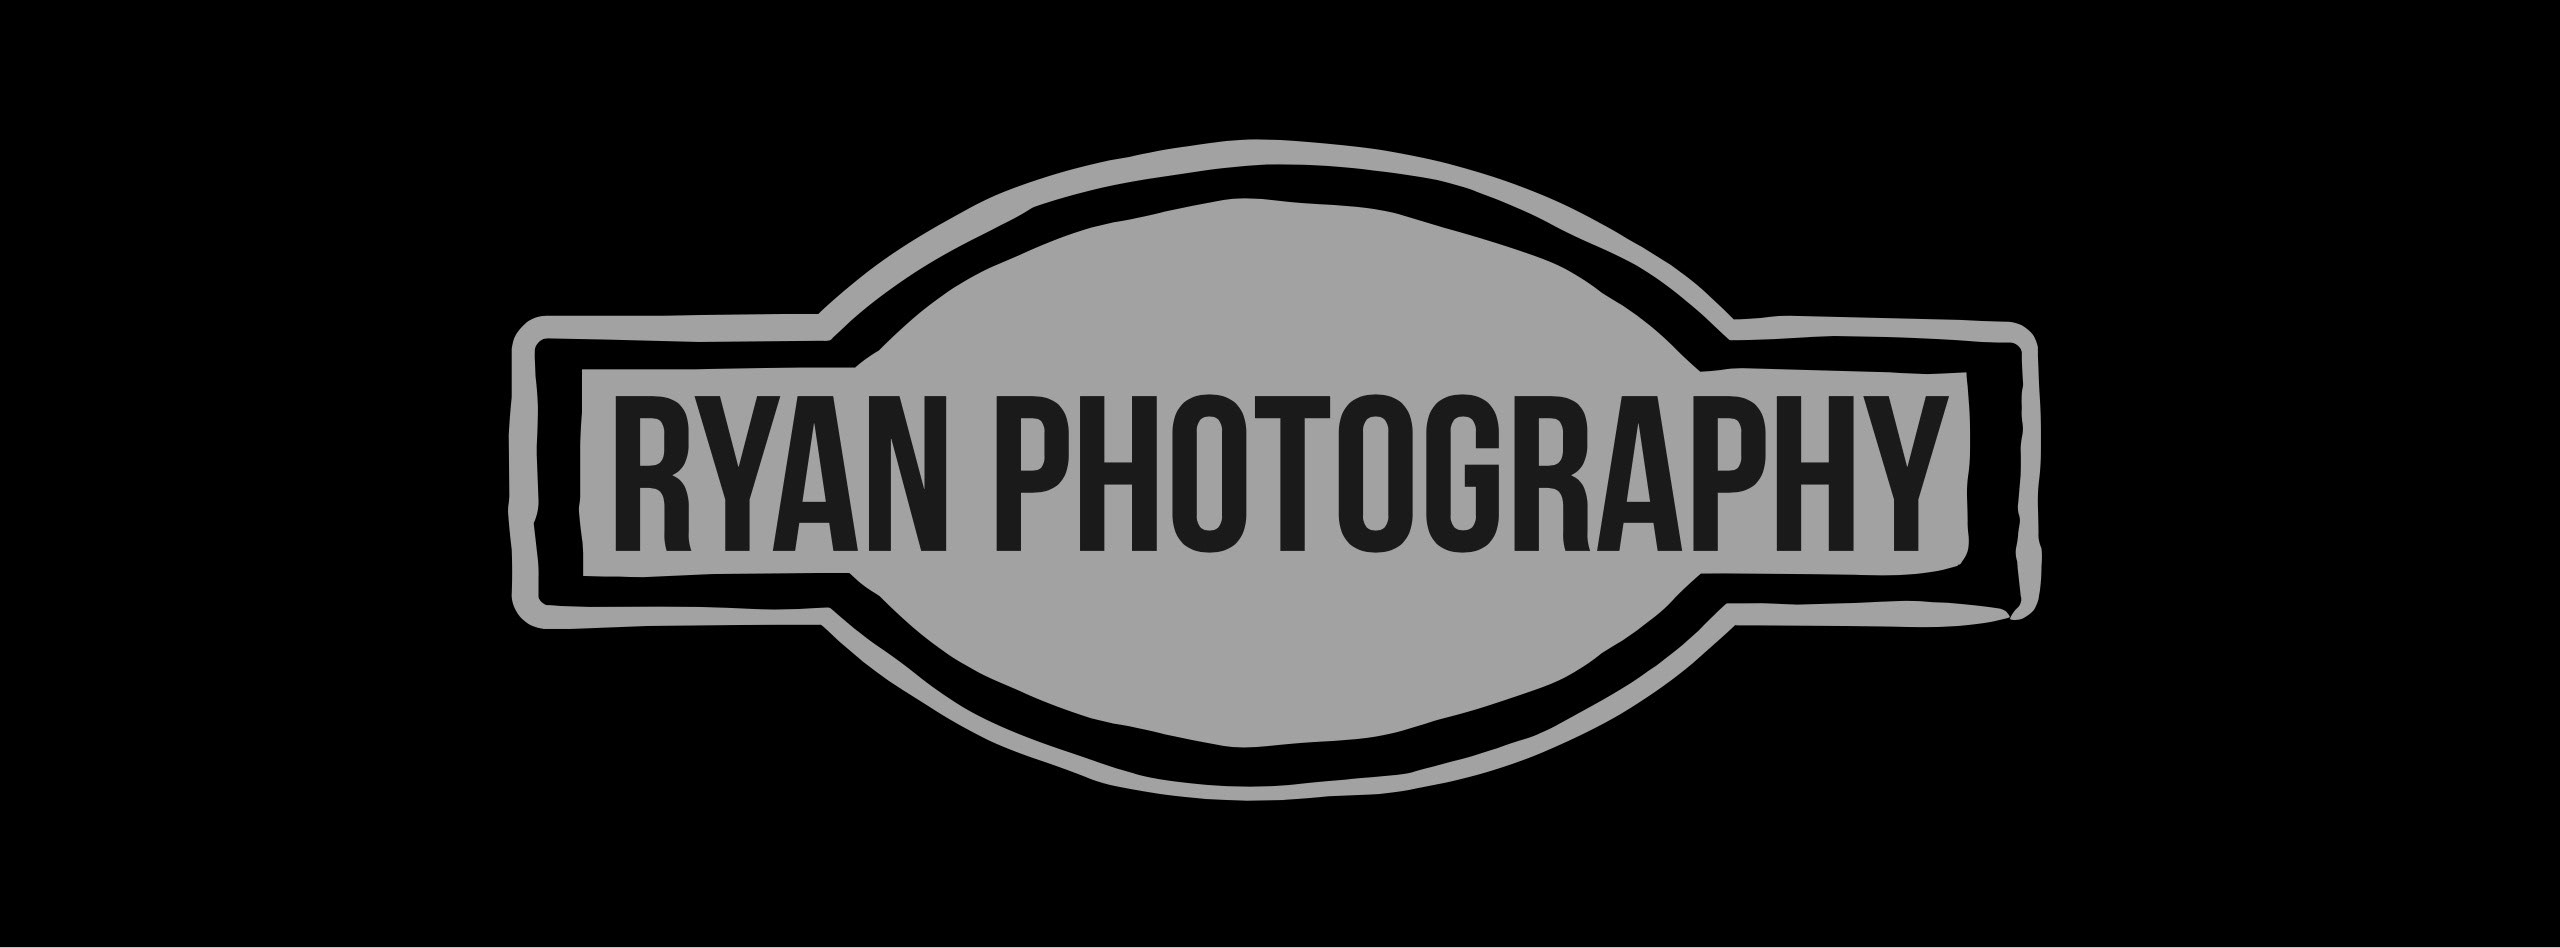 Ryan photography